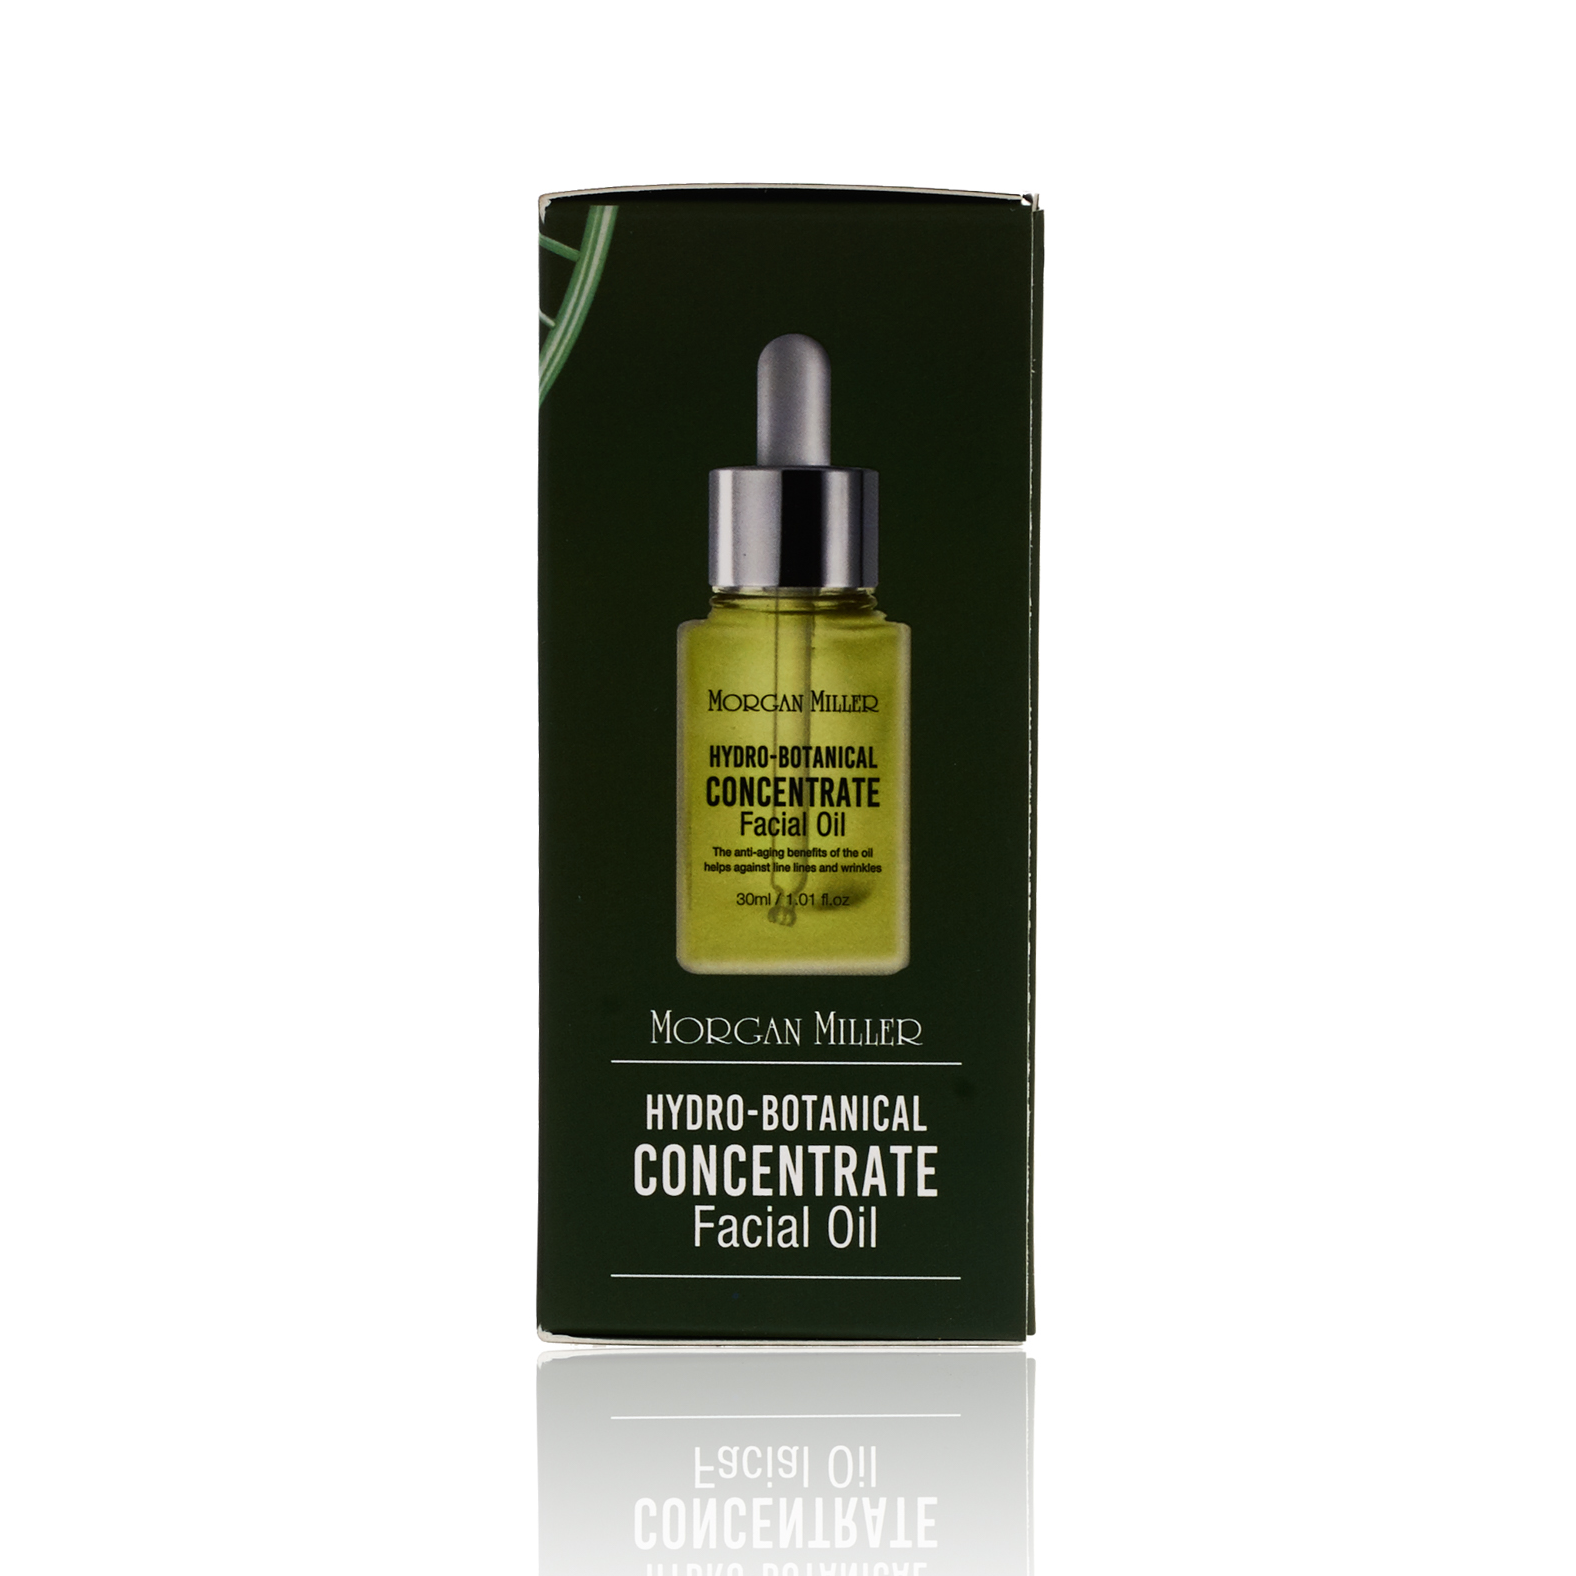 Morgan Miller Hydro-Botanical Concentrate Facial Oil